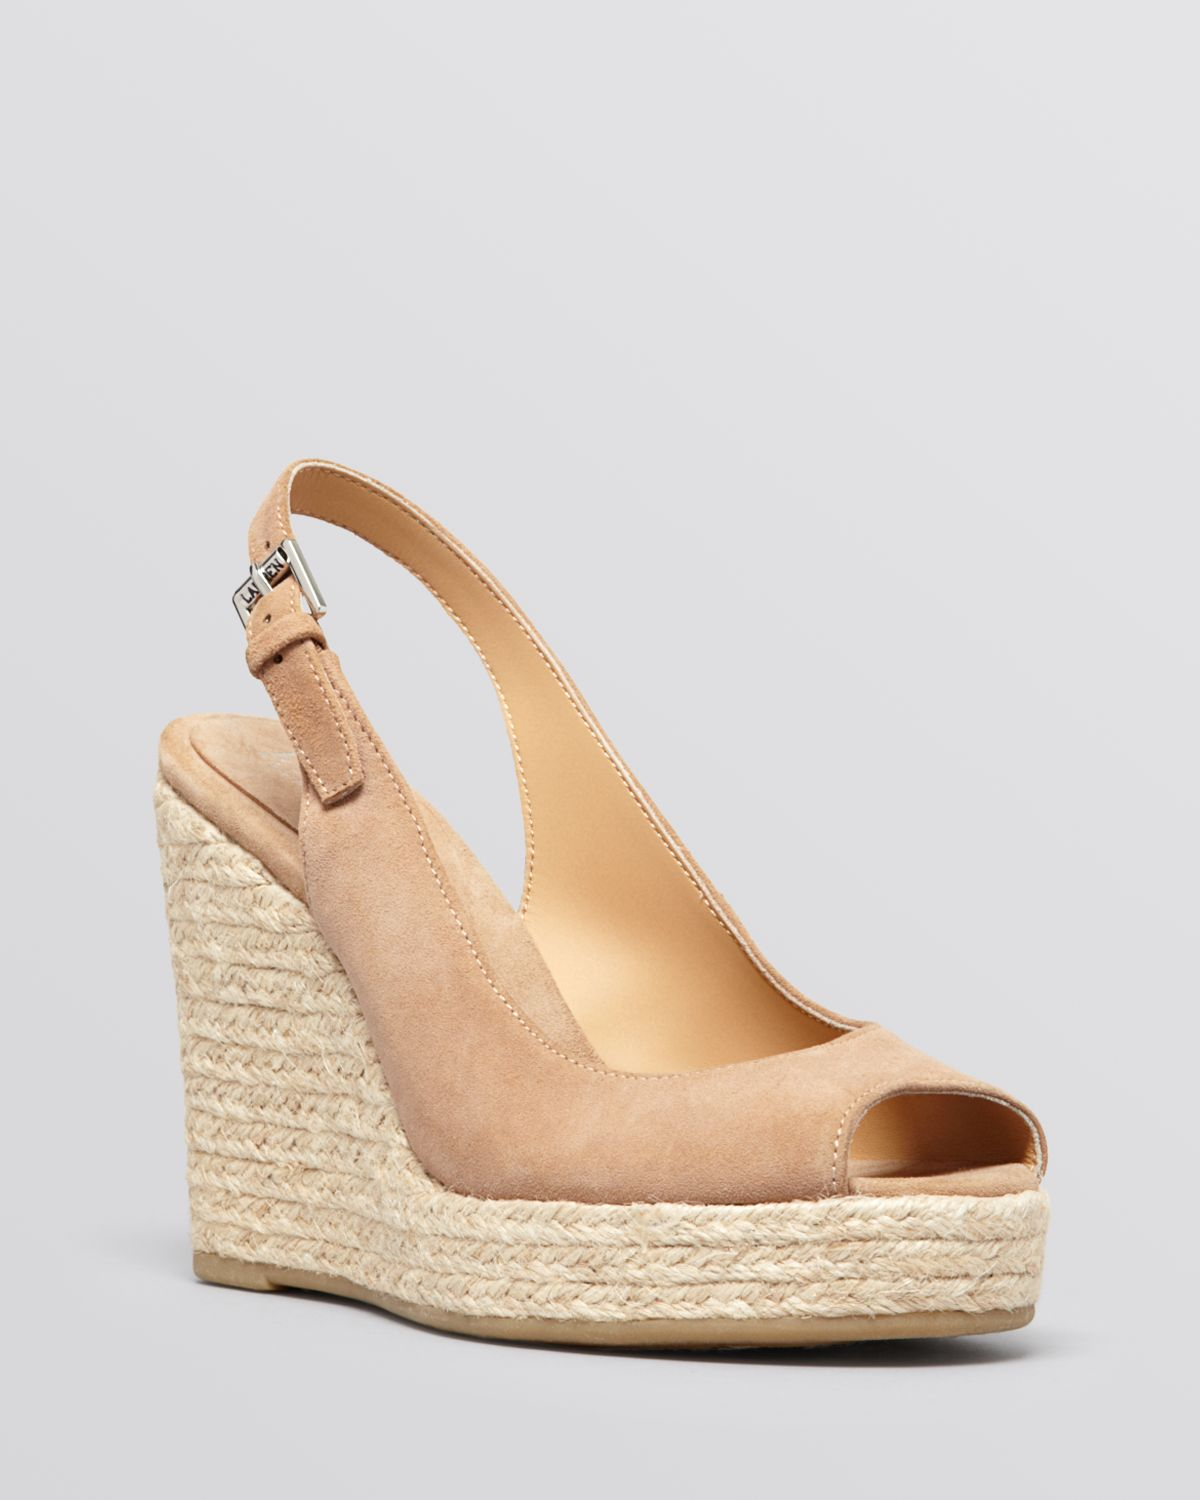 264bc2fddb7 Lauren by Ralph Lauren Natural Peep Toe Platform Wedge Espadrille Sandals  Susy